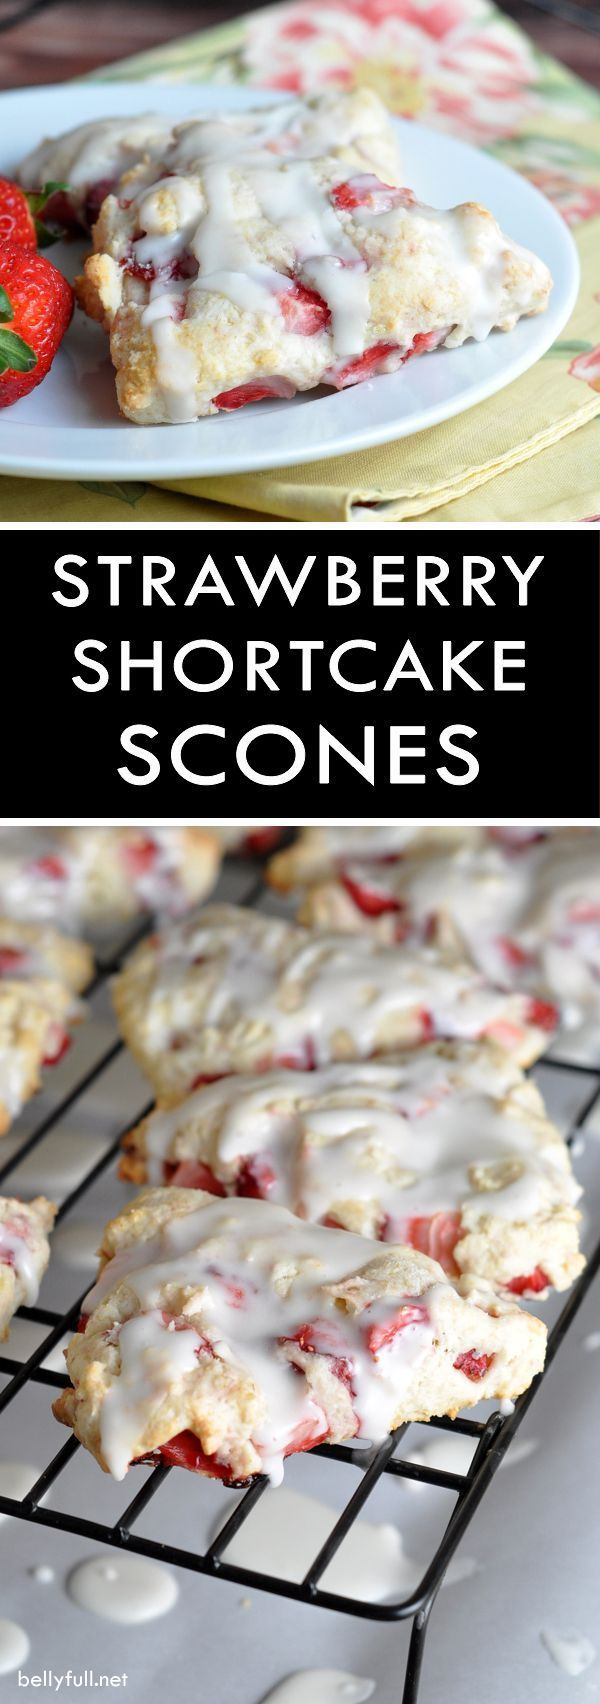 Strawberry Shortcake Scones - tender flaky scones with fresh strawberries throug...